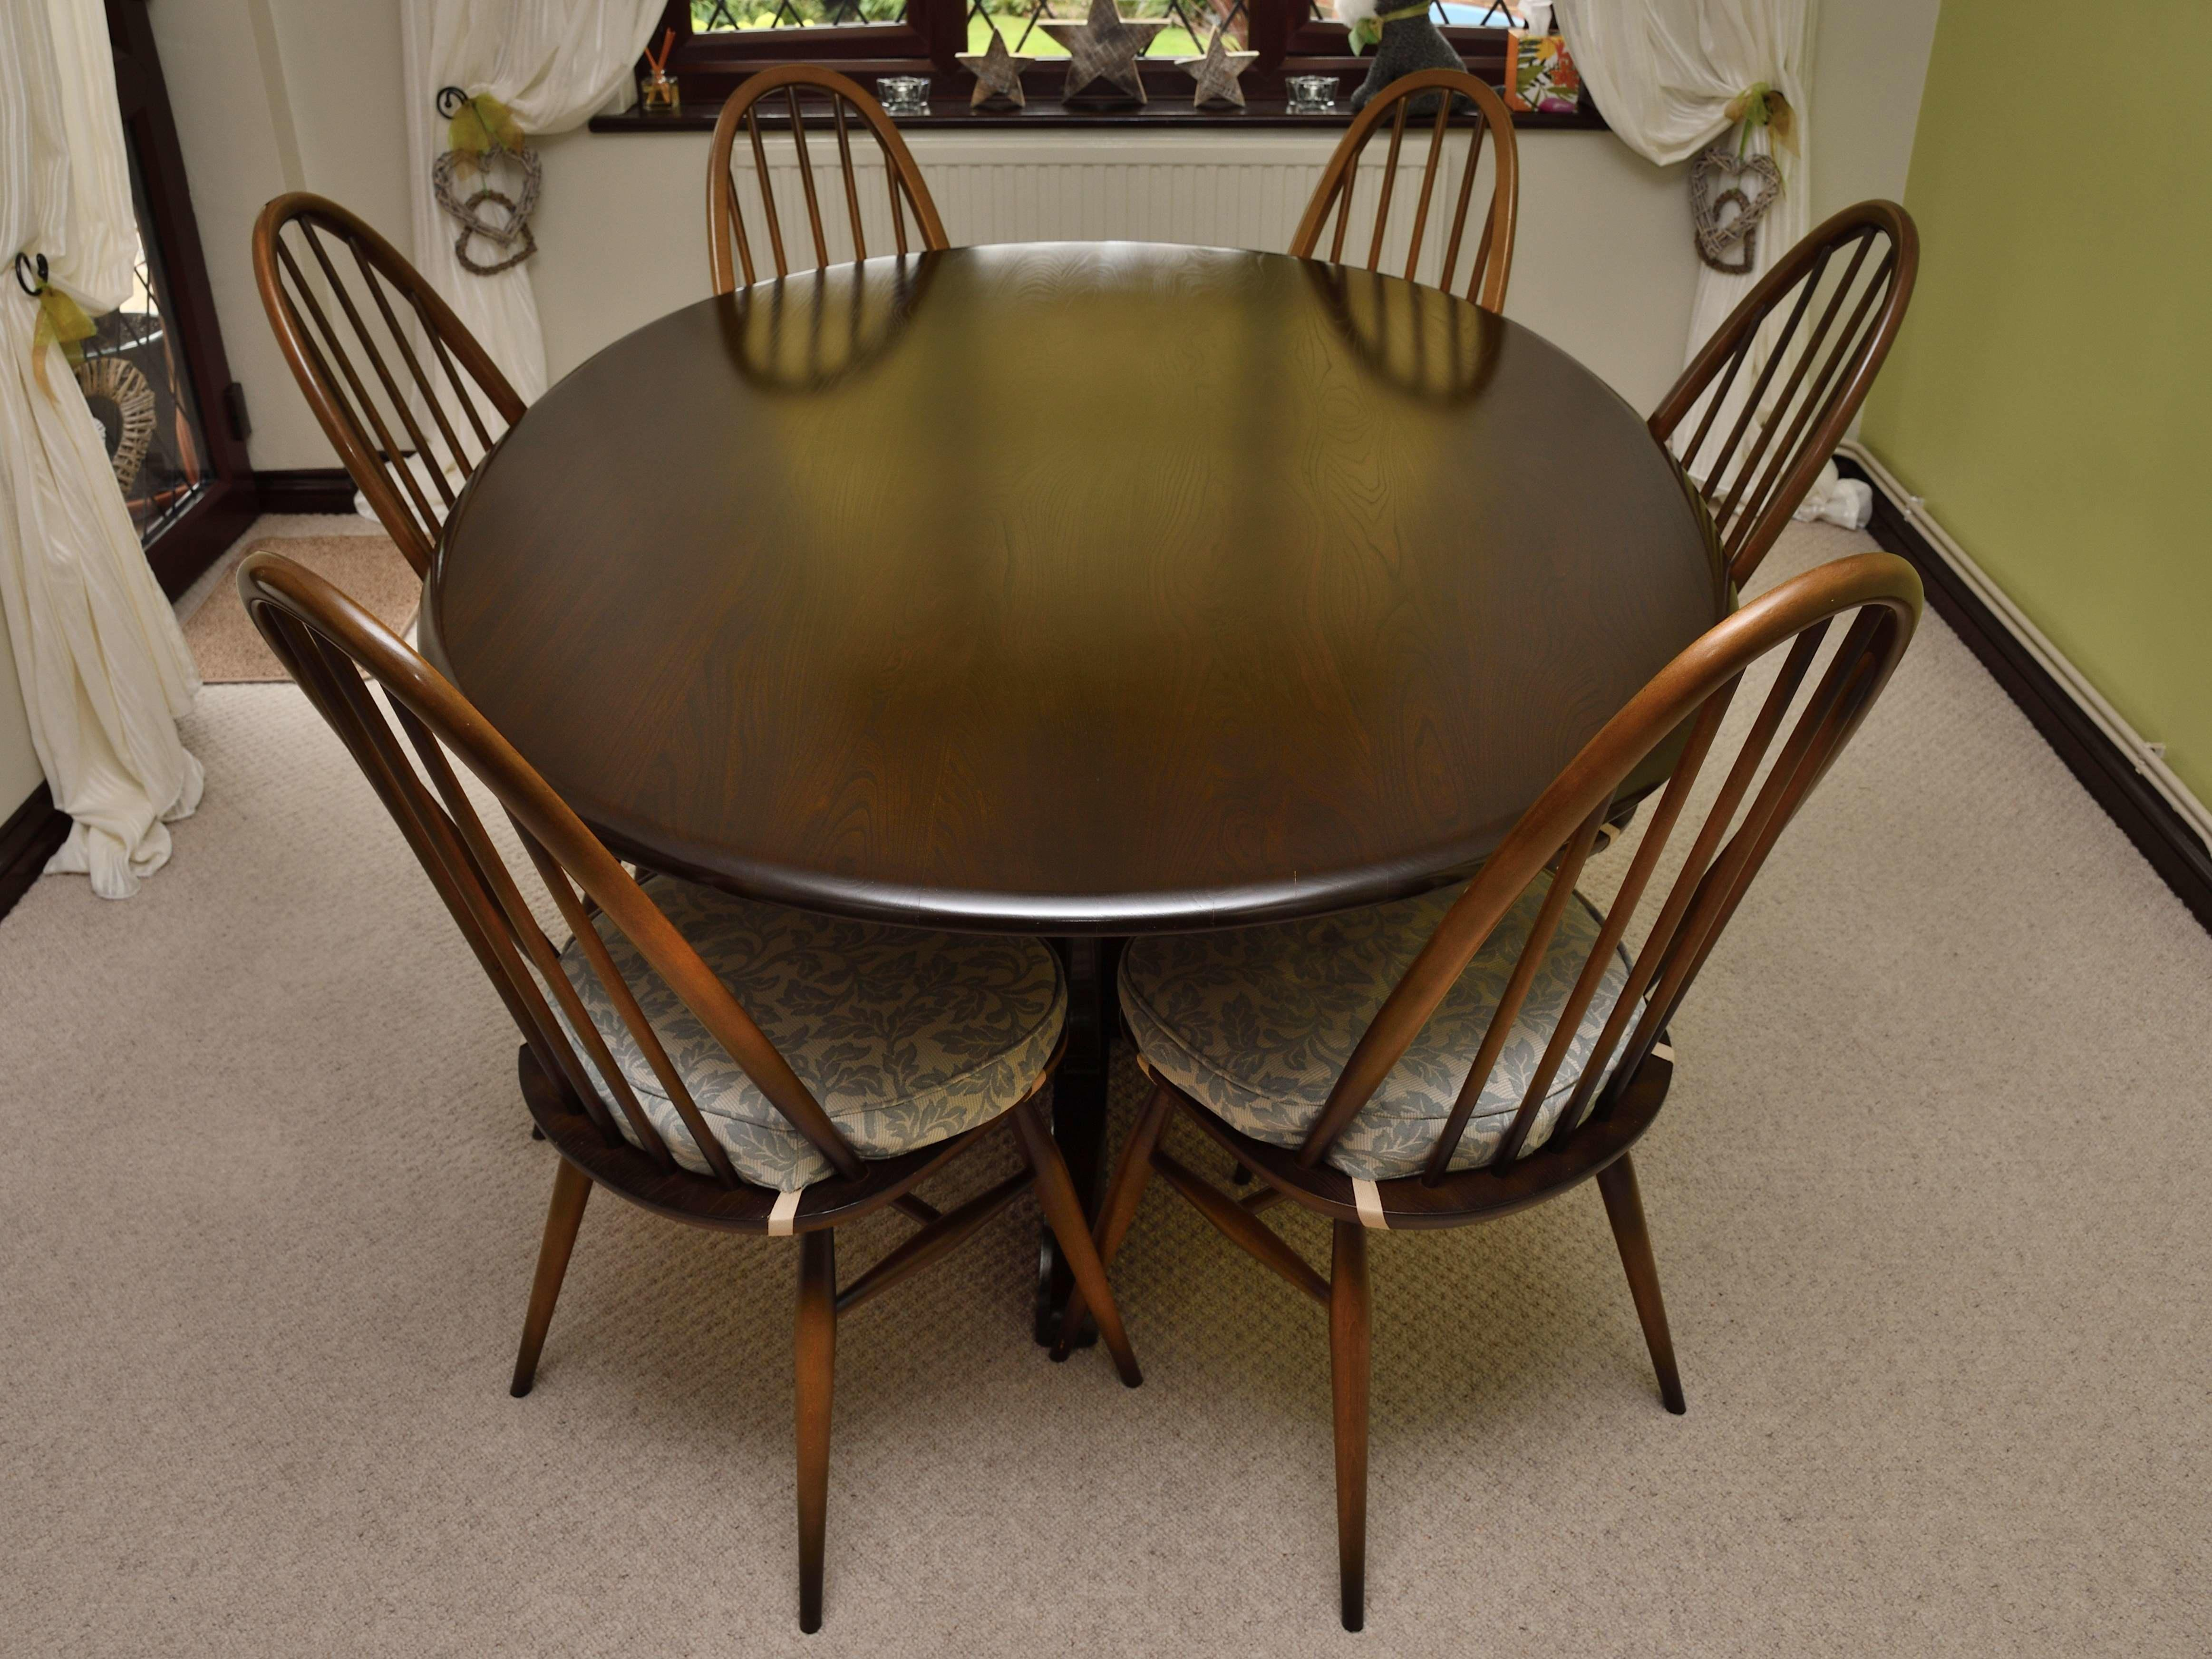 2 Ercol Windsor Dining Chairs Posot Class